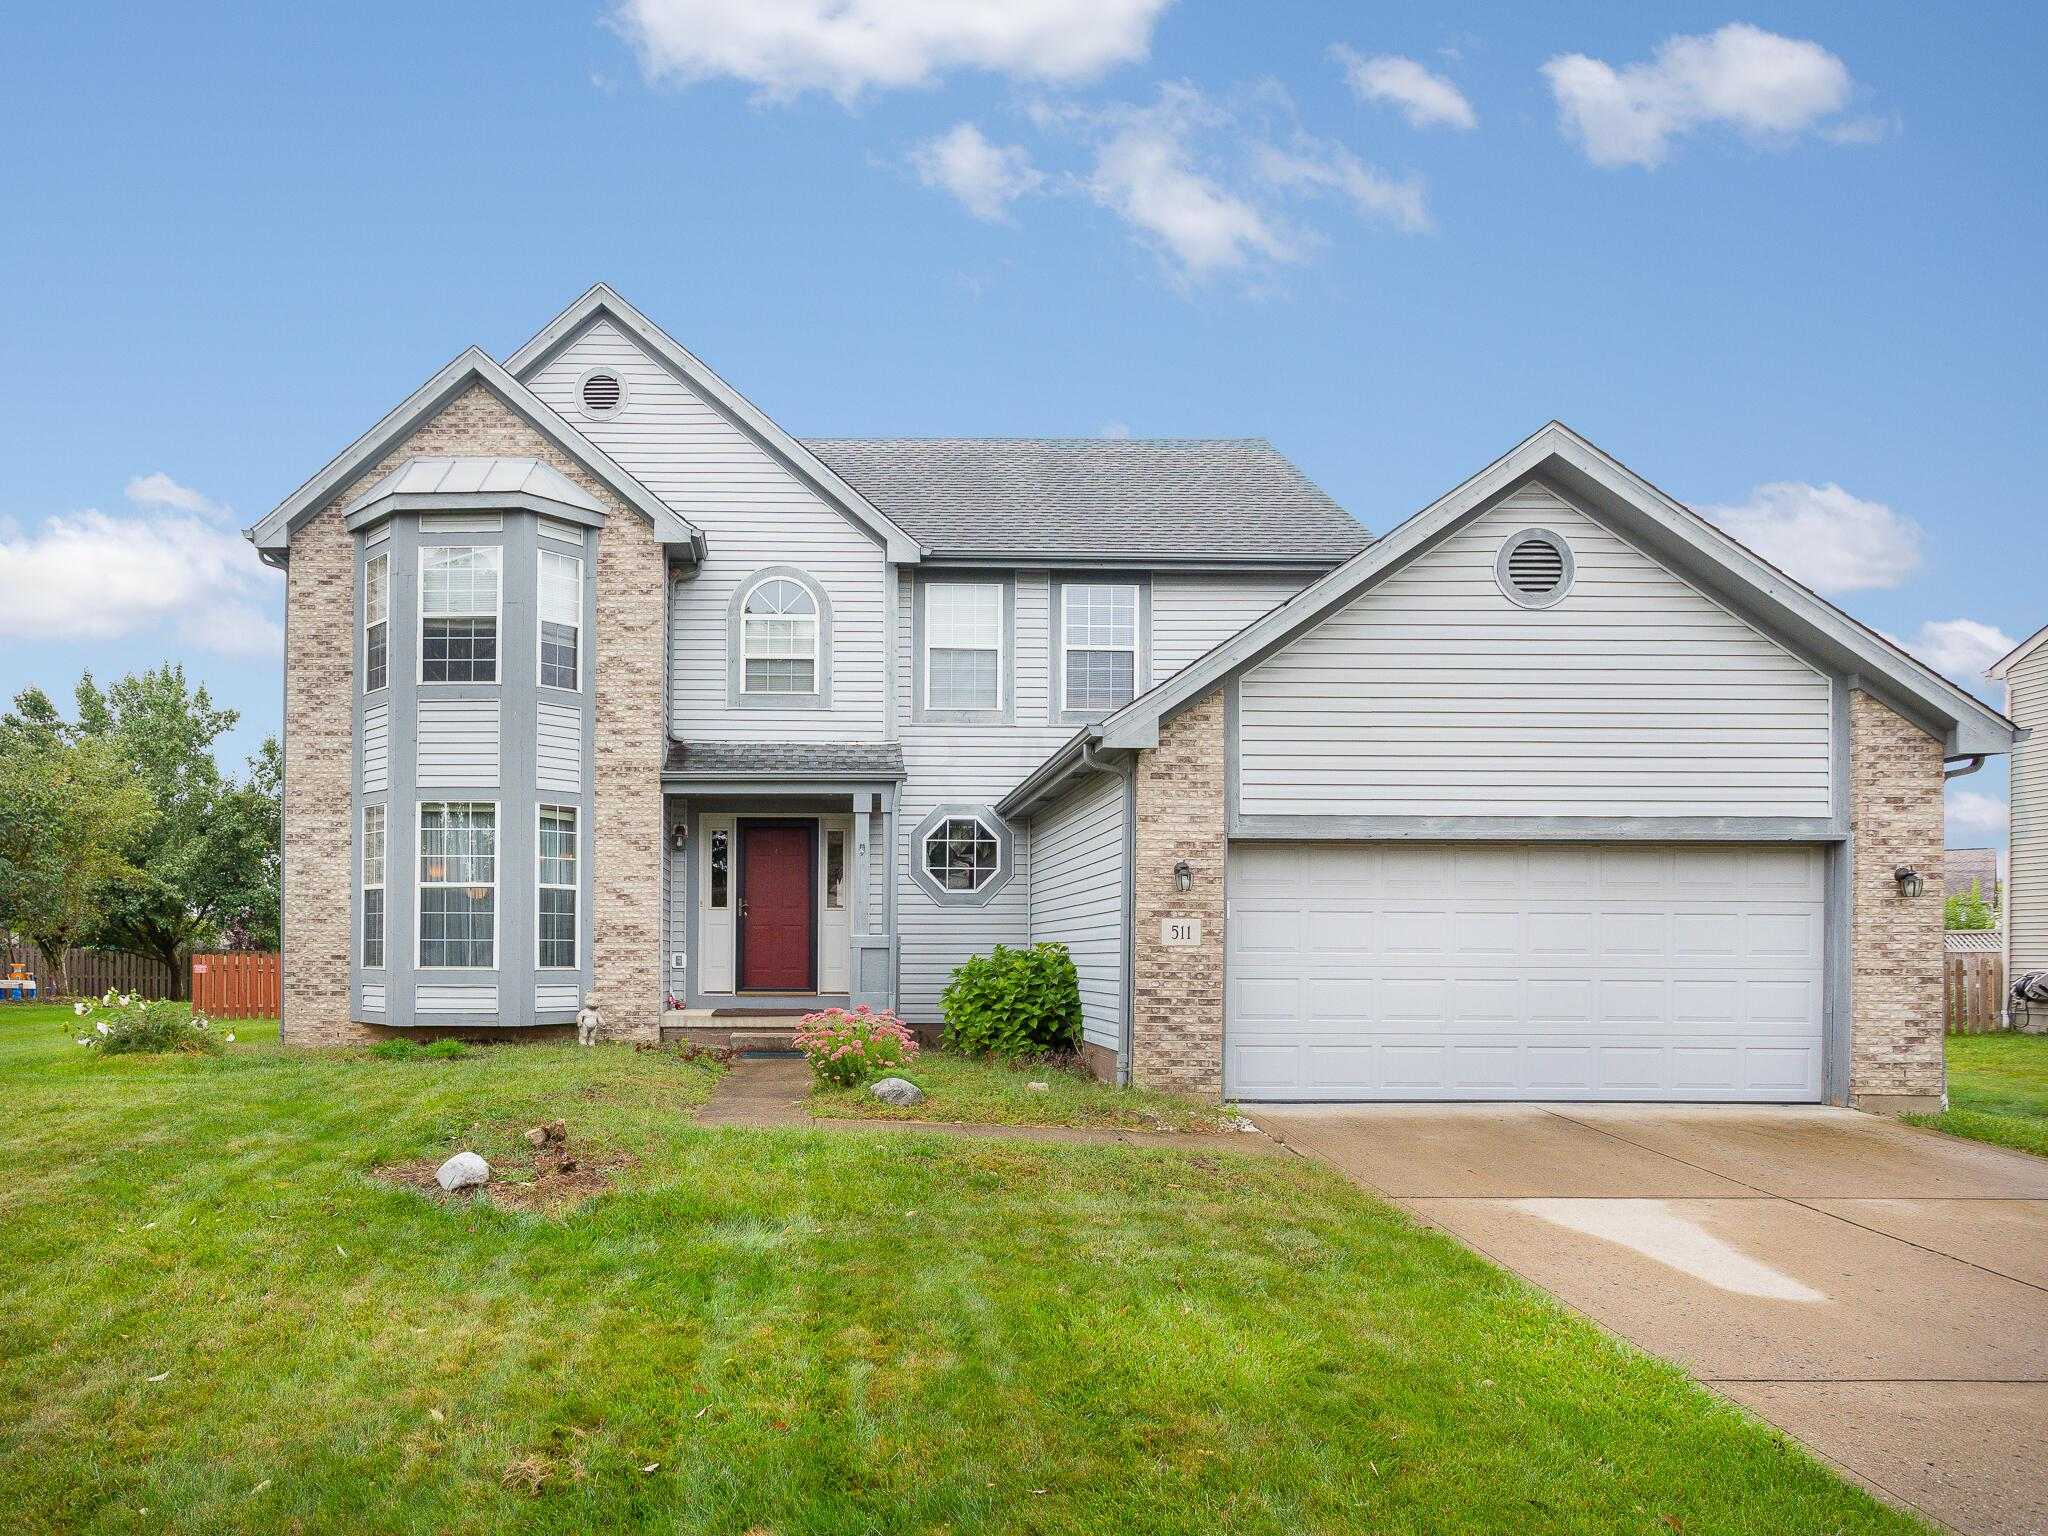 Photo of 511 Greenhill Drive, Groveport, OH 43125